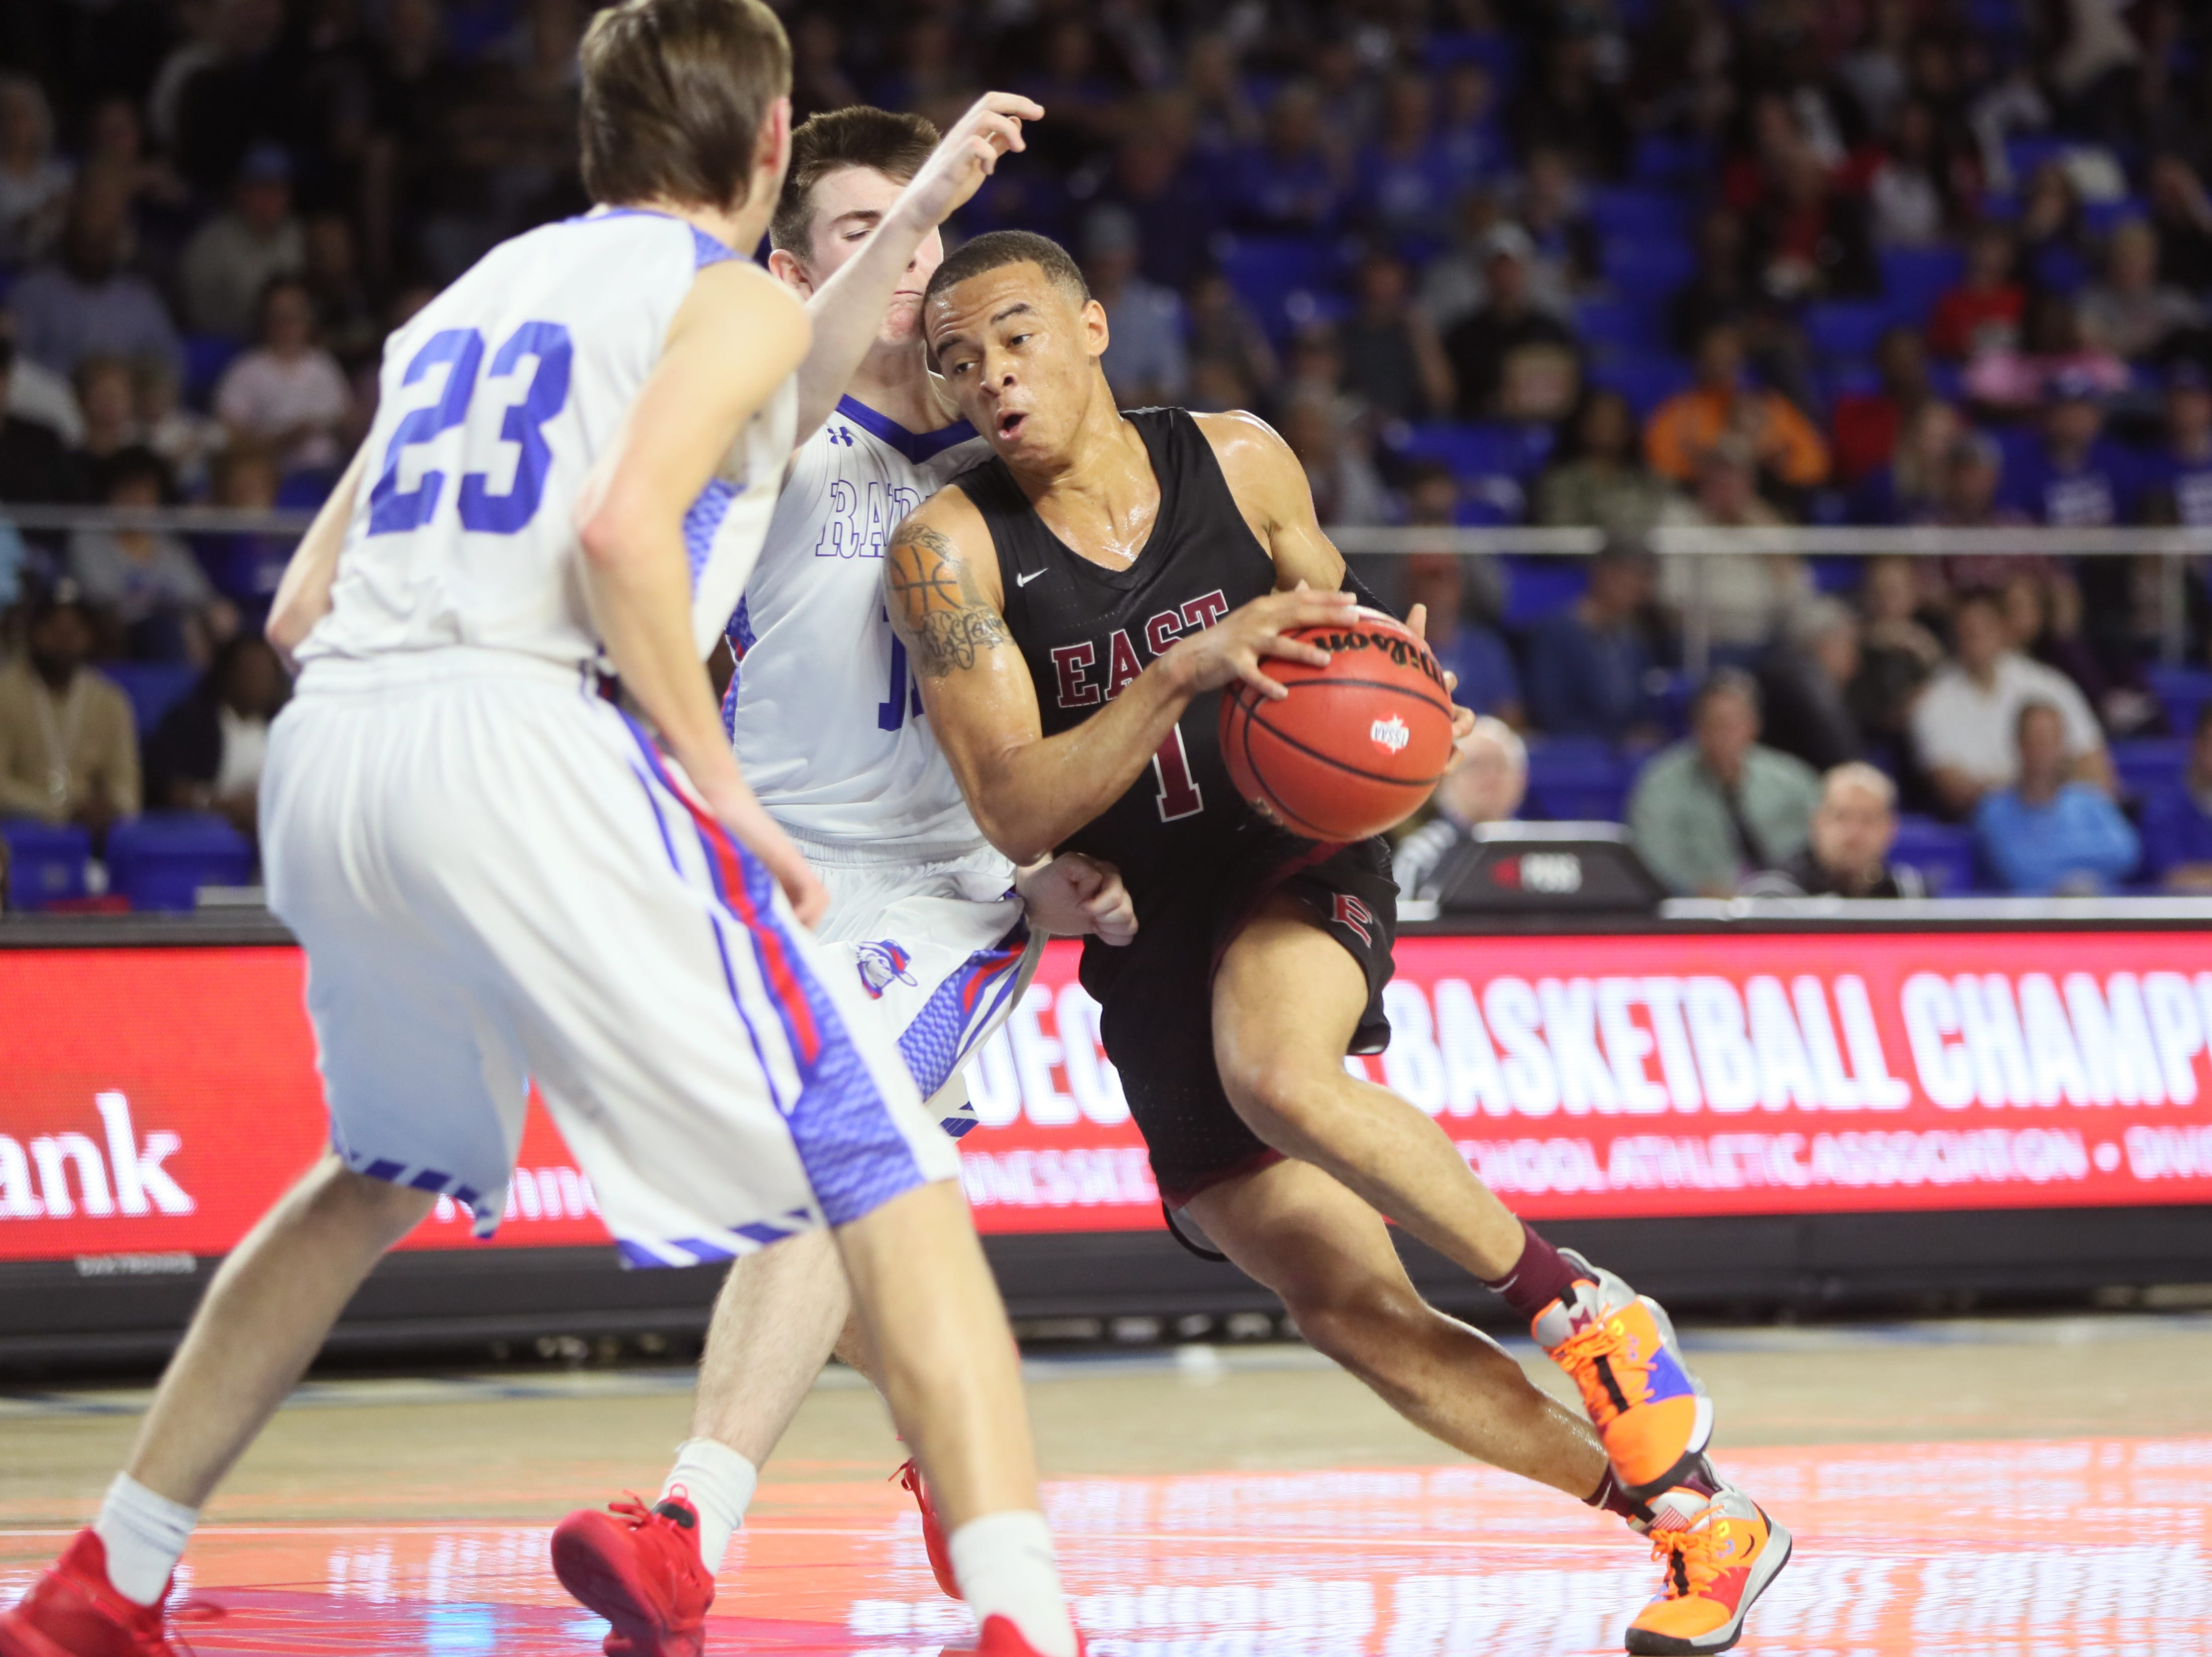 Memphis East's Antonio Thomas drives past Cleveland's Grant Hurst during the TSSAA Division I basketball state tournament at the Murphy Center in Murfreesboro, Tenn. on Thursday, March 14, 2019.